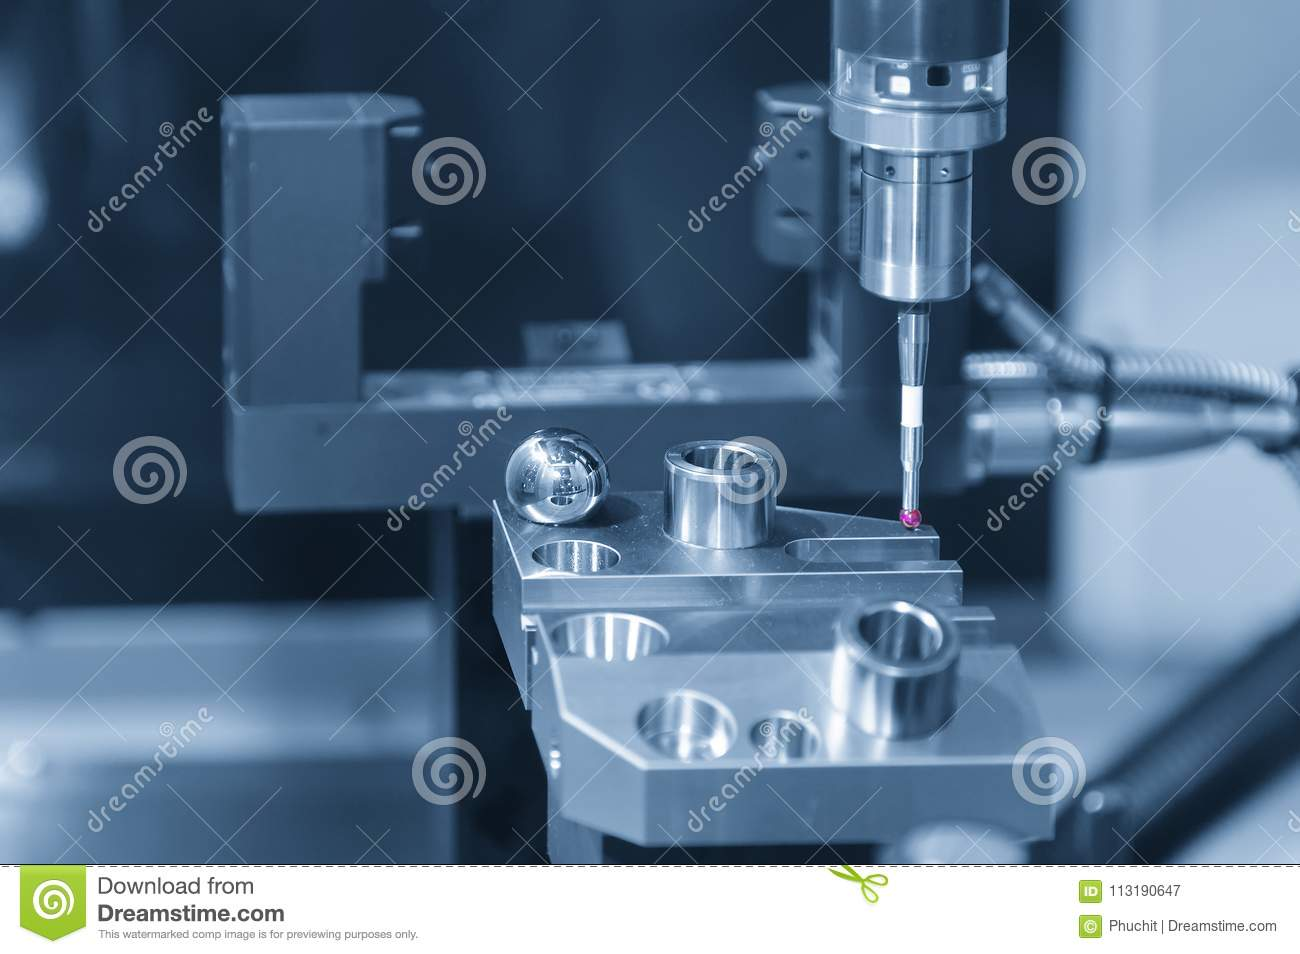 The CMM Probe Attach On The CNC Milling Machine Stock Image - Image ...